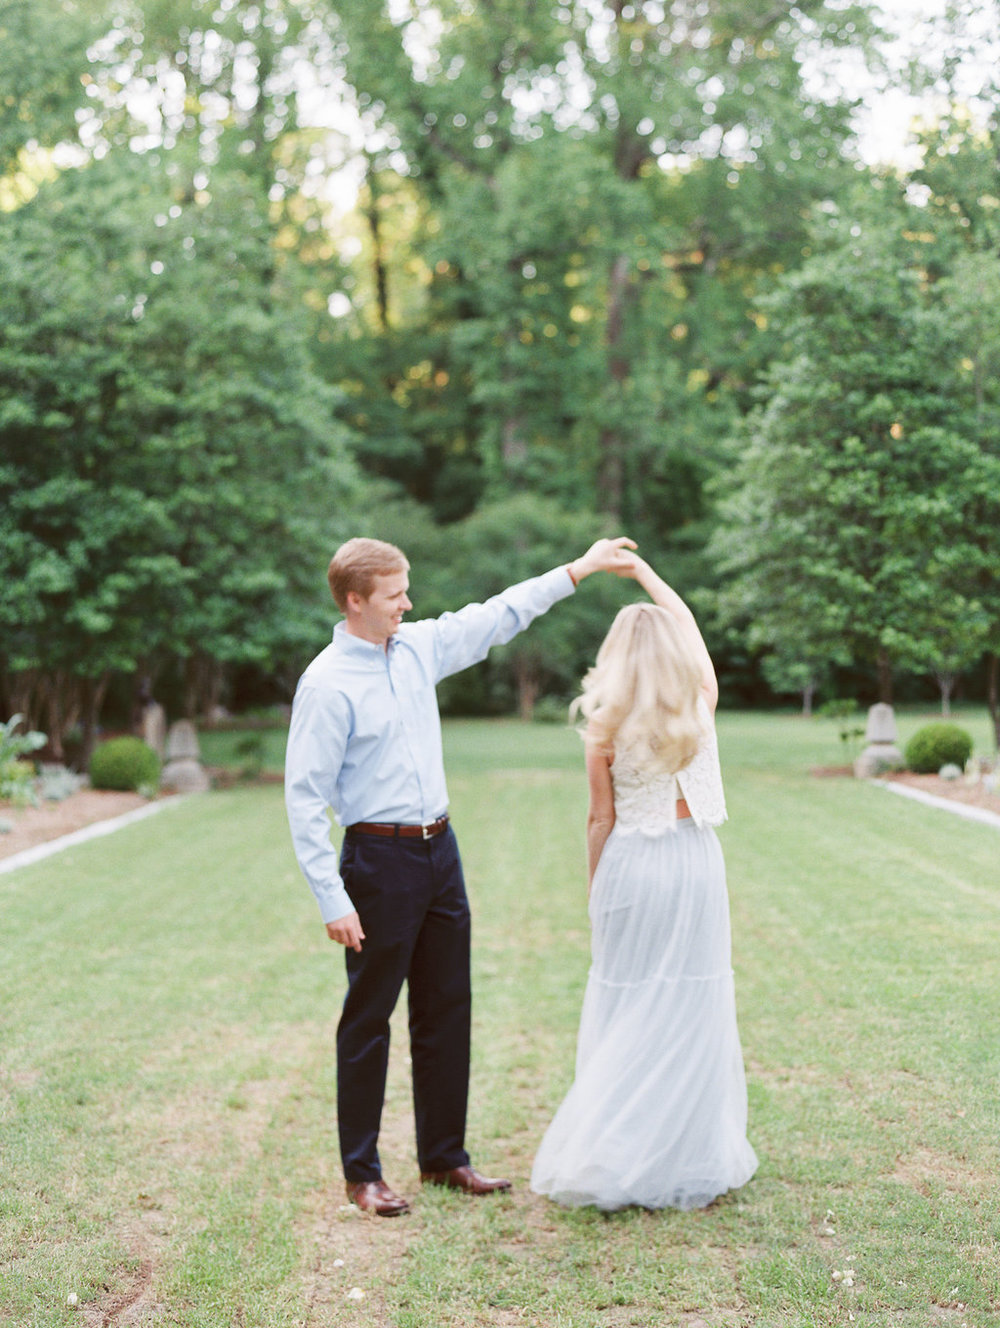 Cator-Woolford-Gardens-Engagement-atlanta-wedding-photographer-hannah-forsberg-21.jpg